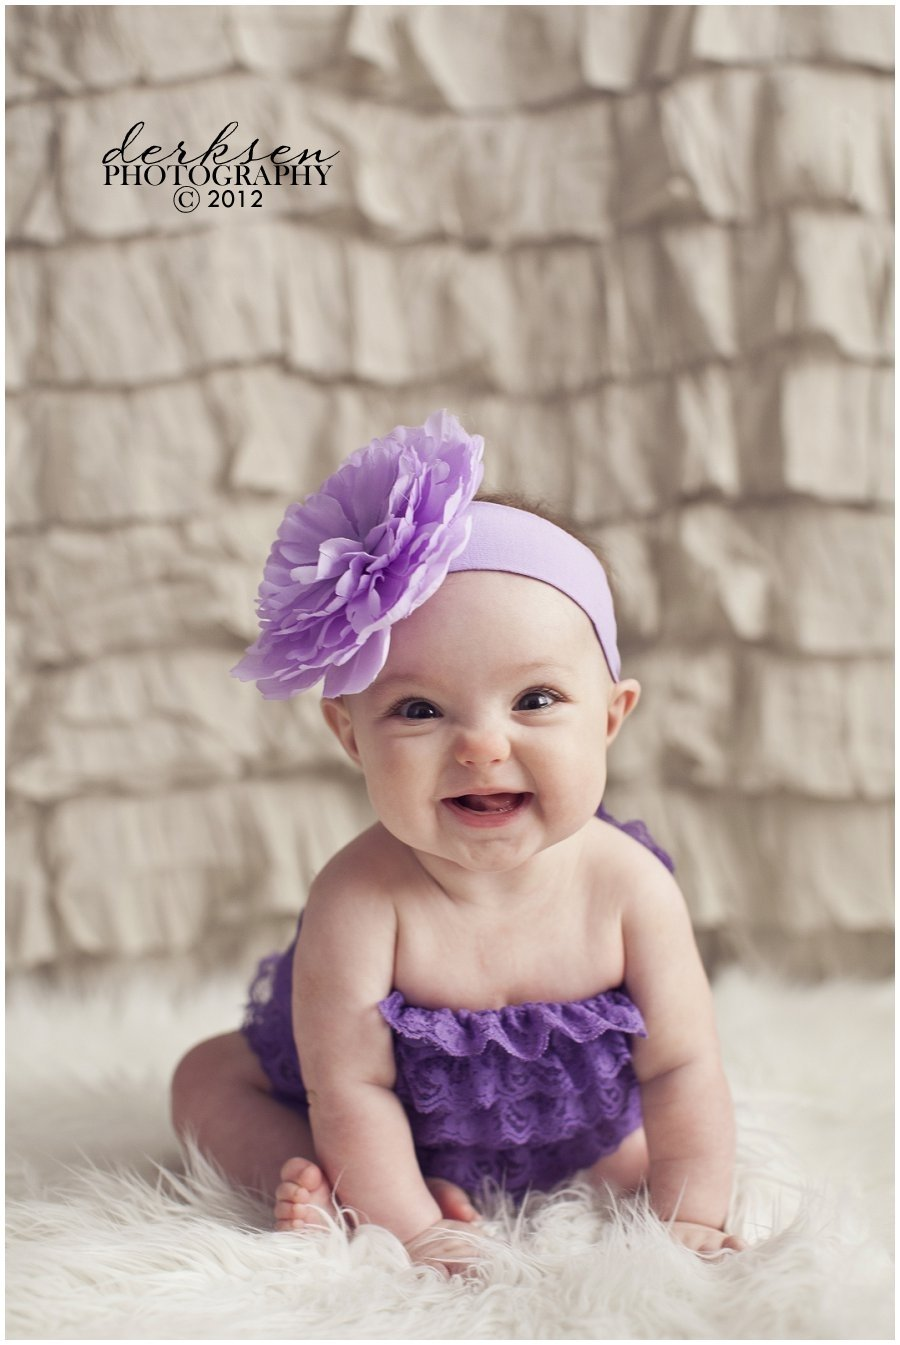 10 Awesome Cute 6 Month Baby Picture Ideas little miss audrey 6 months old derksen photography